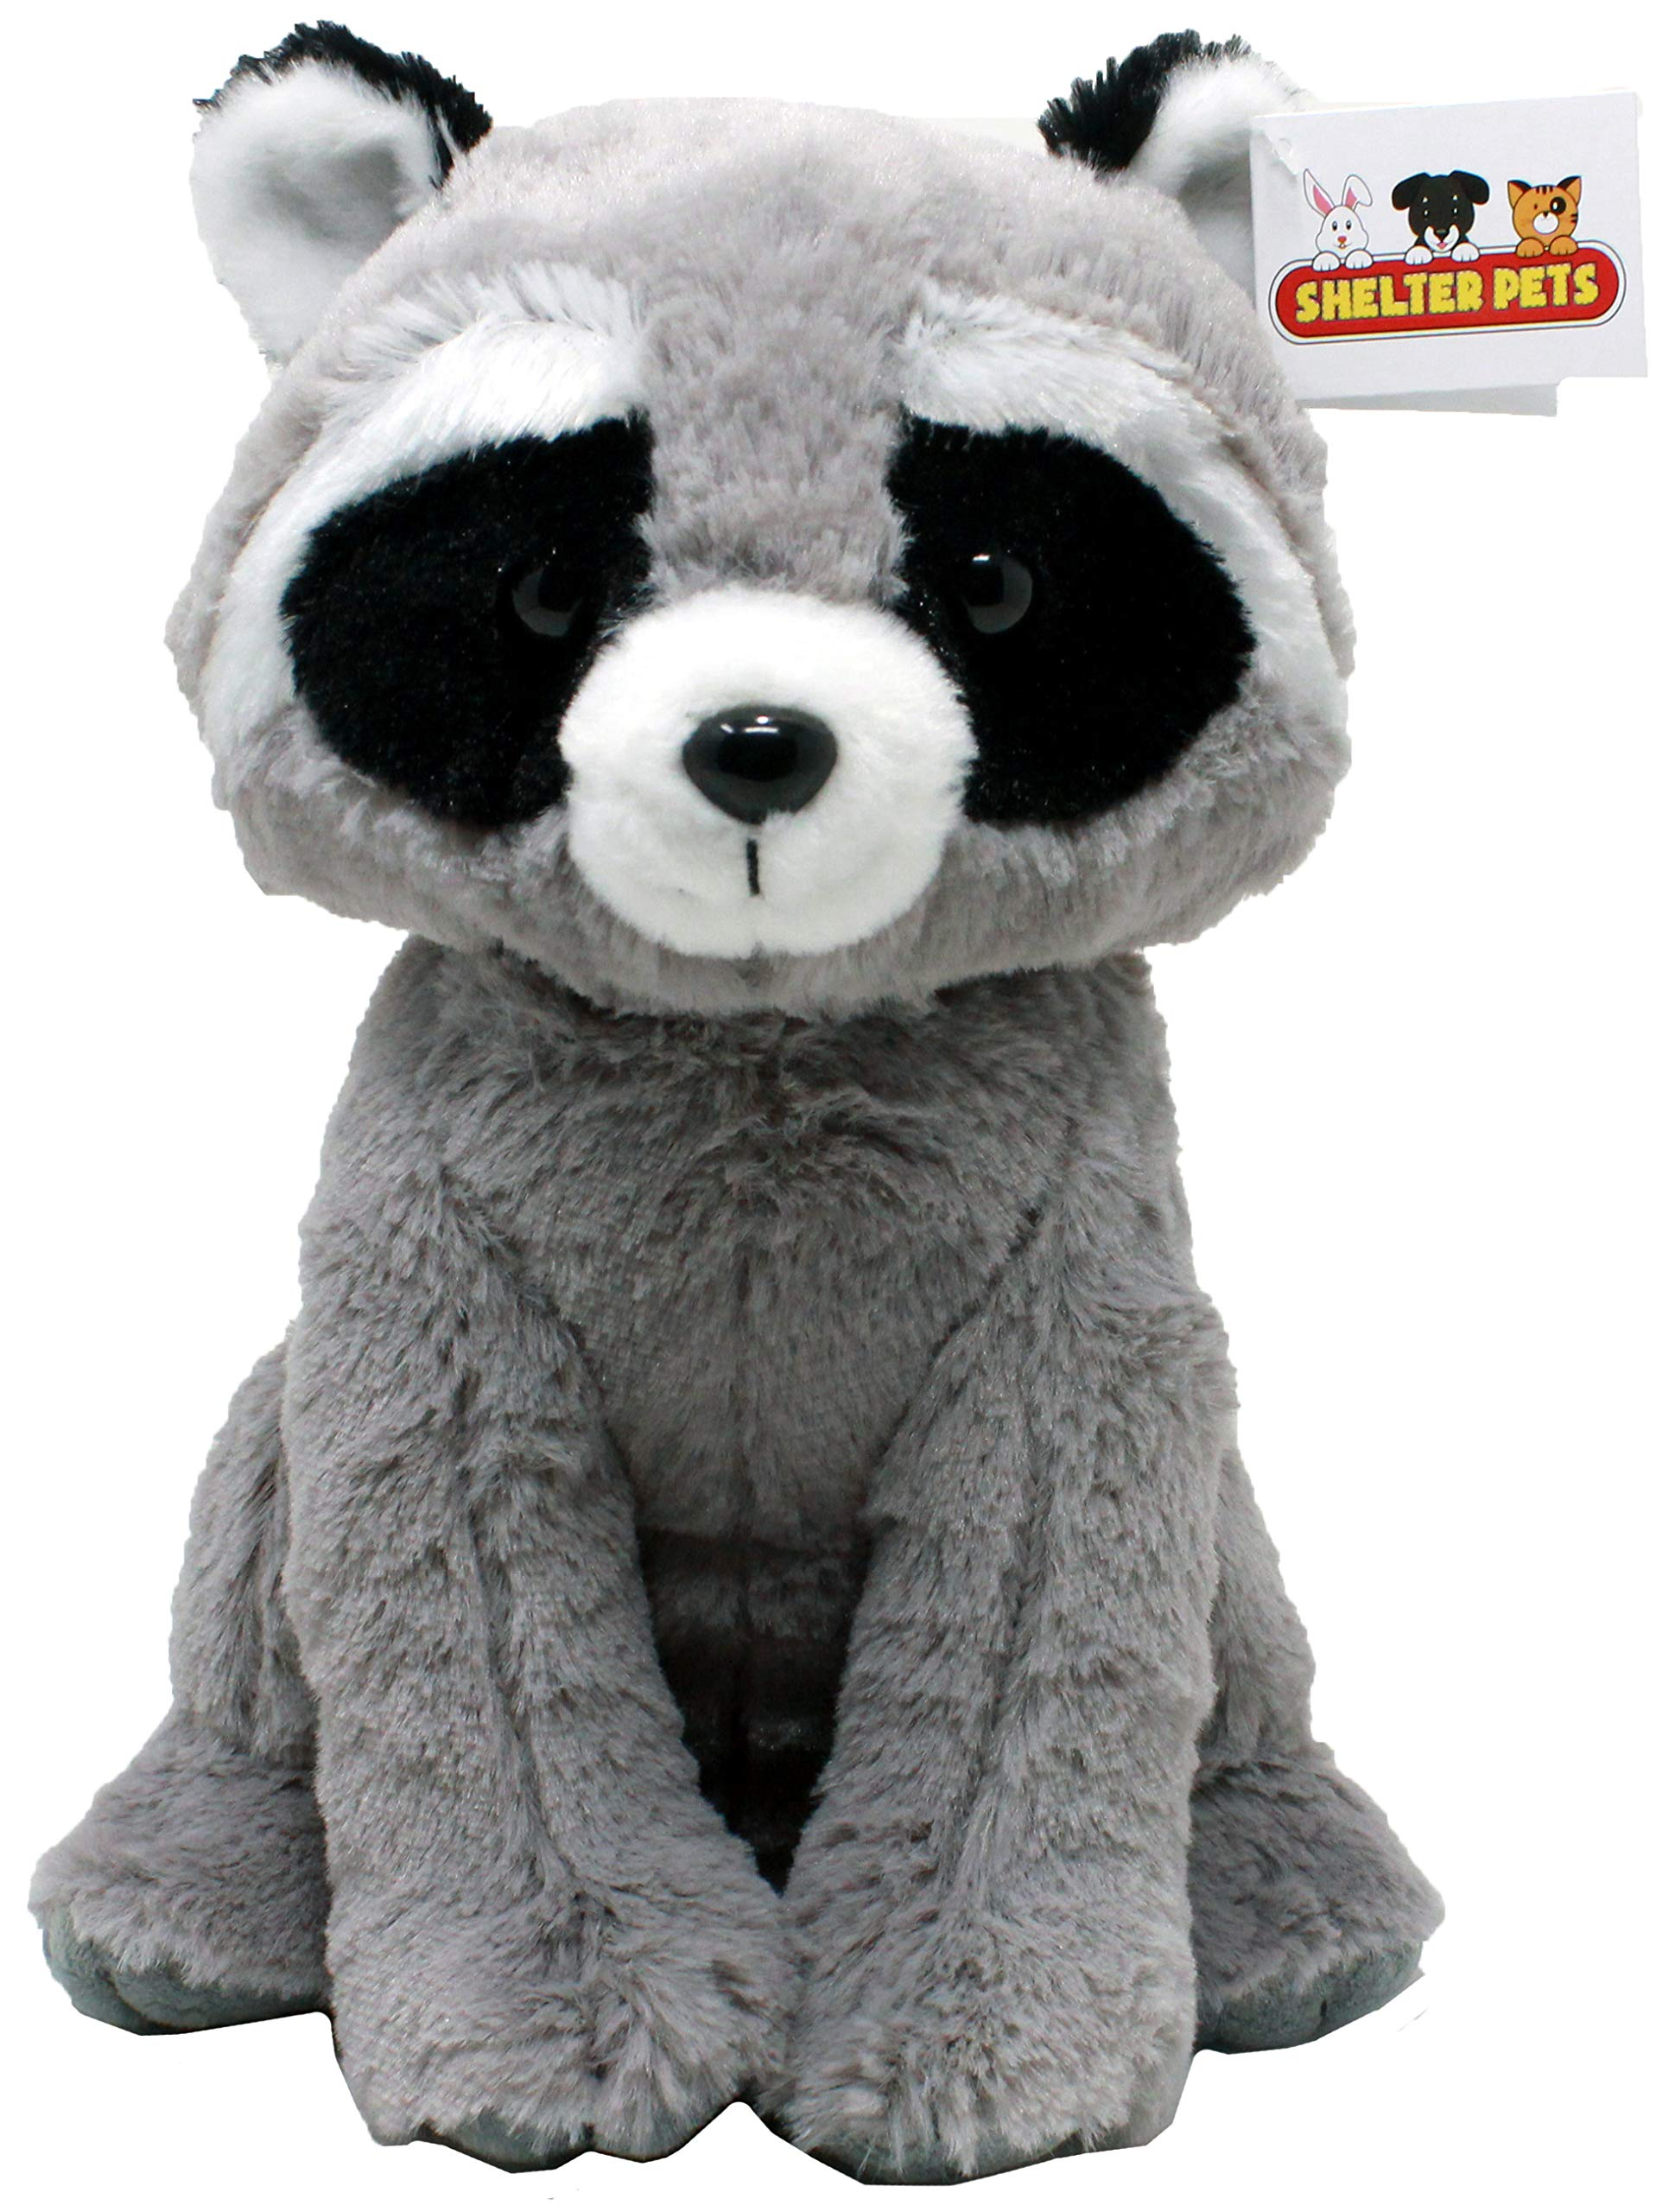 """Shelter Pets: Stella the Raccoon - 10"""" Raccoons Plush Toy Stuffed Animals - Based on Real-Life Adopted Pets - Benefiting the Puppy and Dogs Animal Shelters They Were Adopted From- Trash Panda Plushies"""